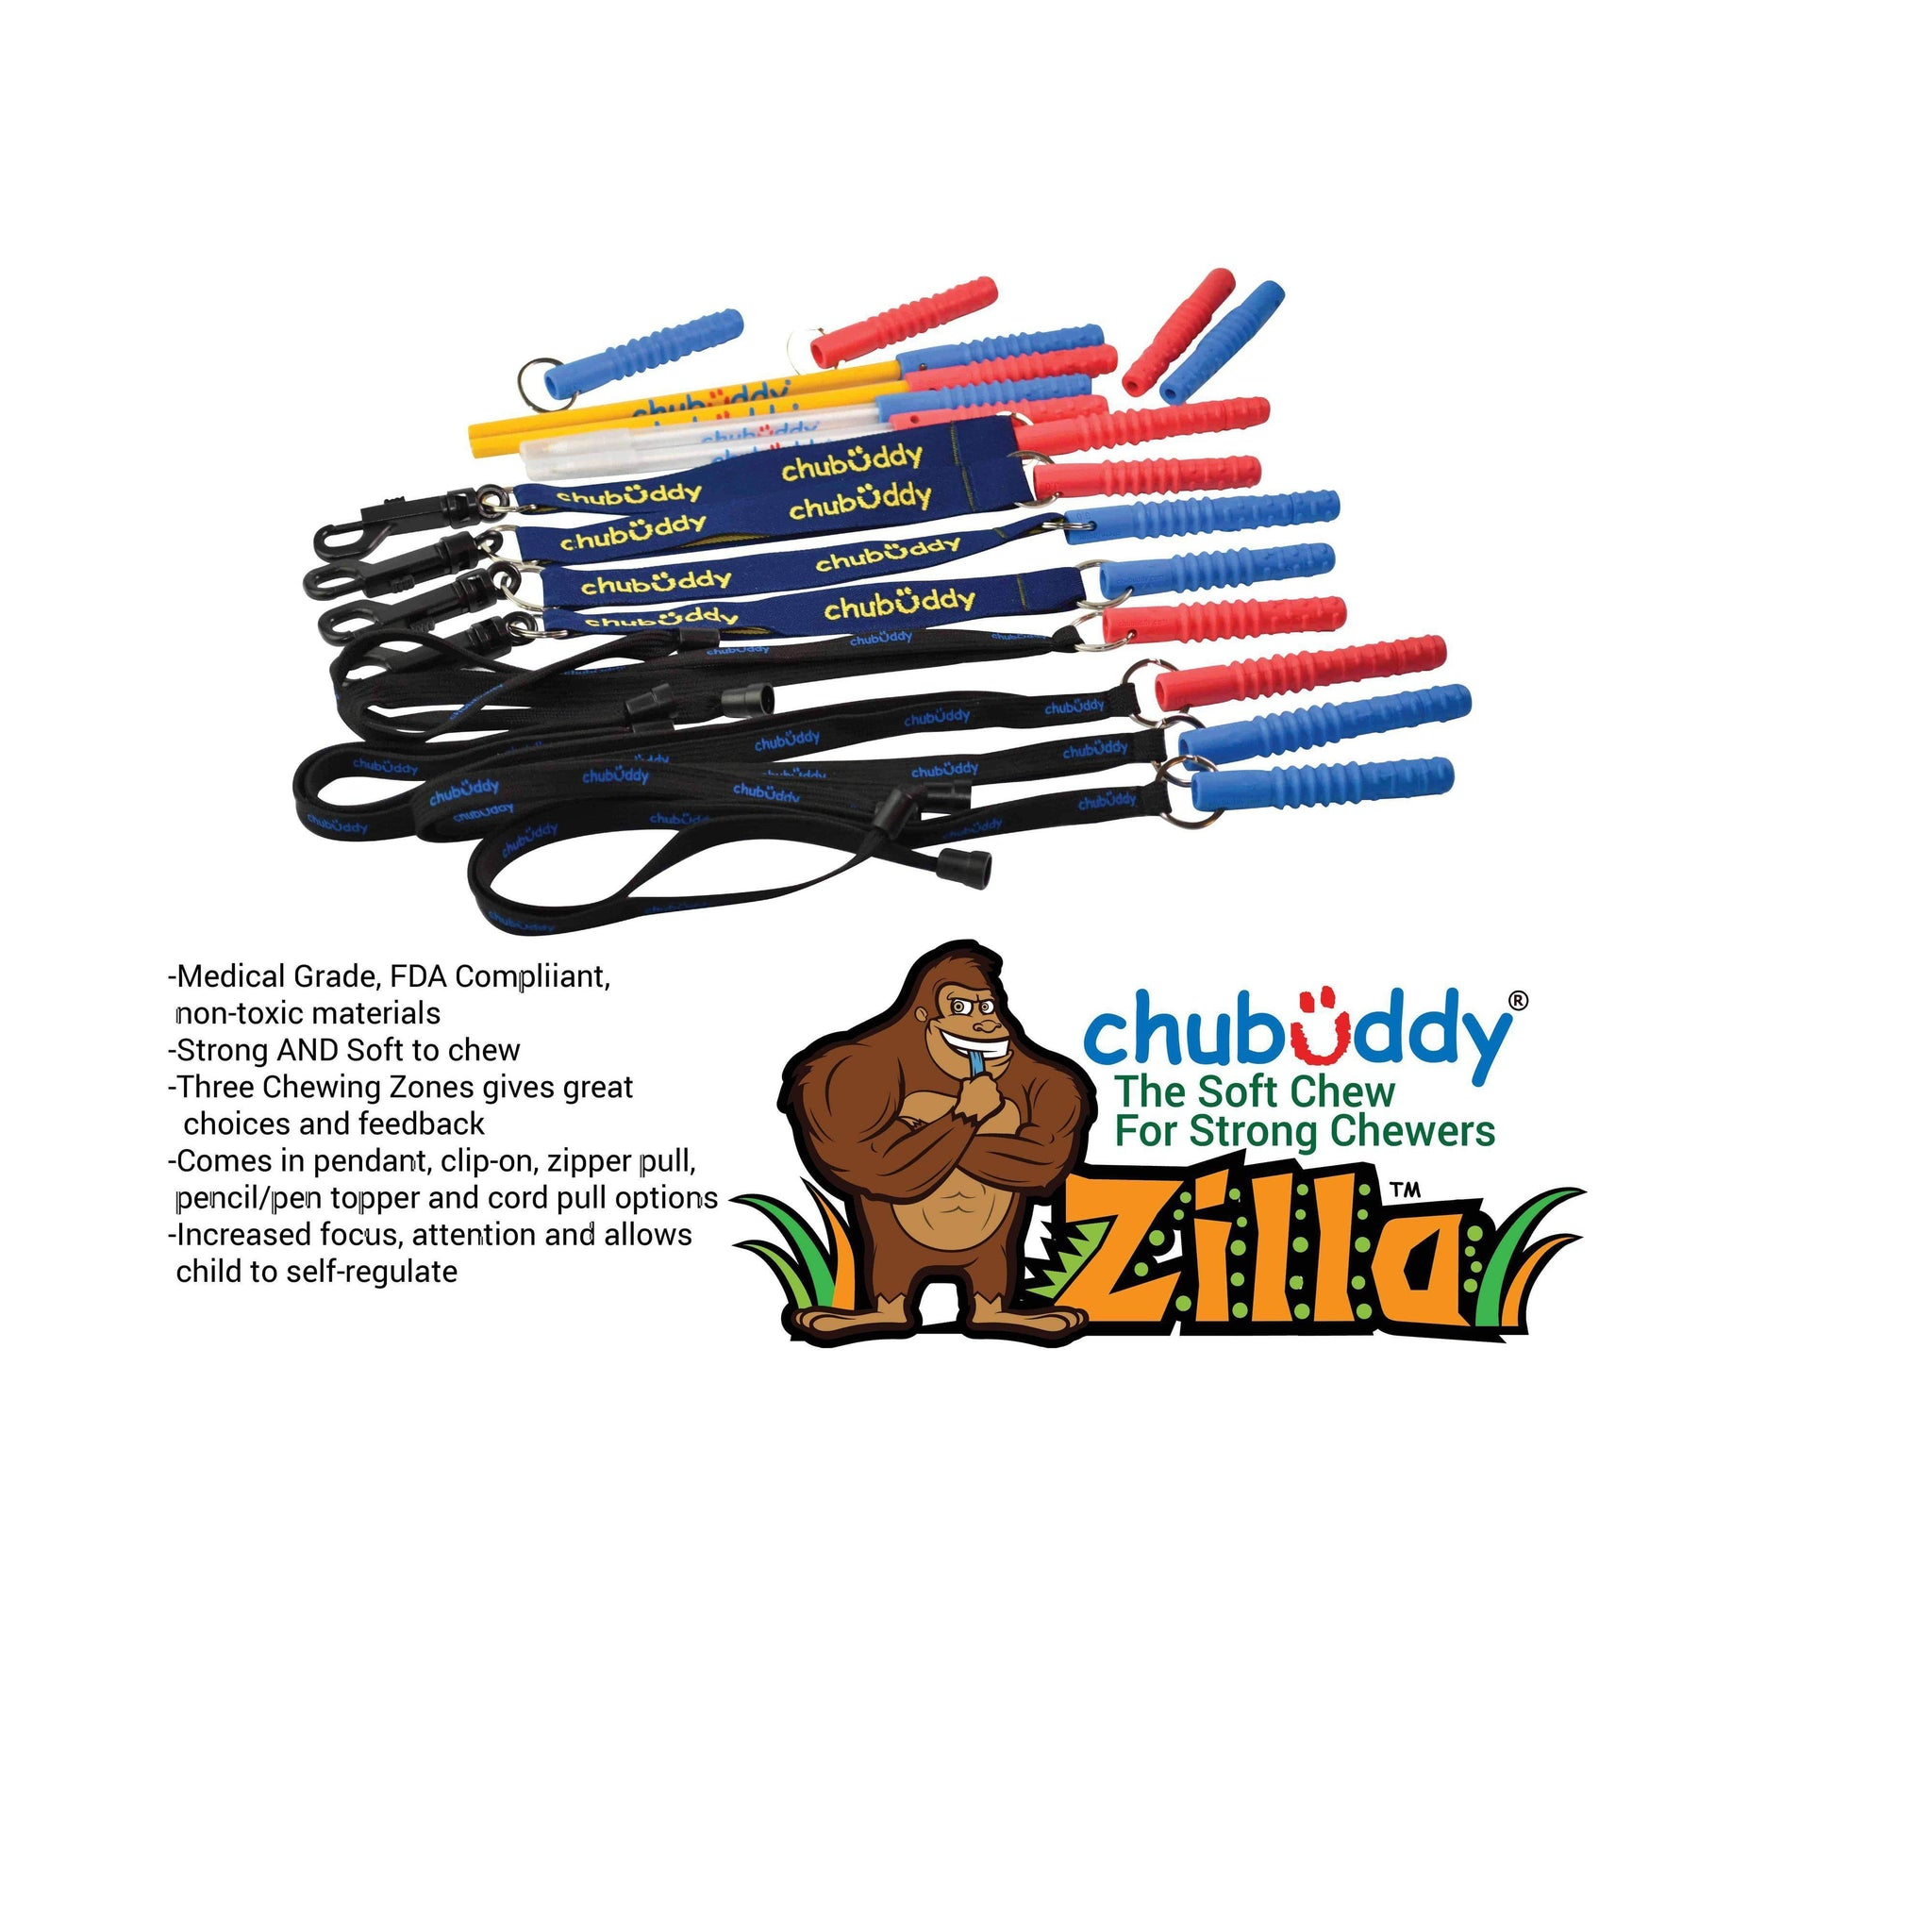 Chubuddy Red Cord Zilla with Black Cord and Install Pack| 70A Durometer Soft | Chew Factor 3.0 Strong | Attaches to Most Hoodies | Discreet